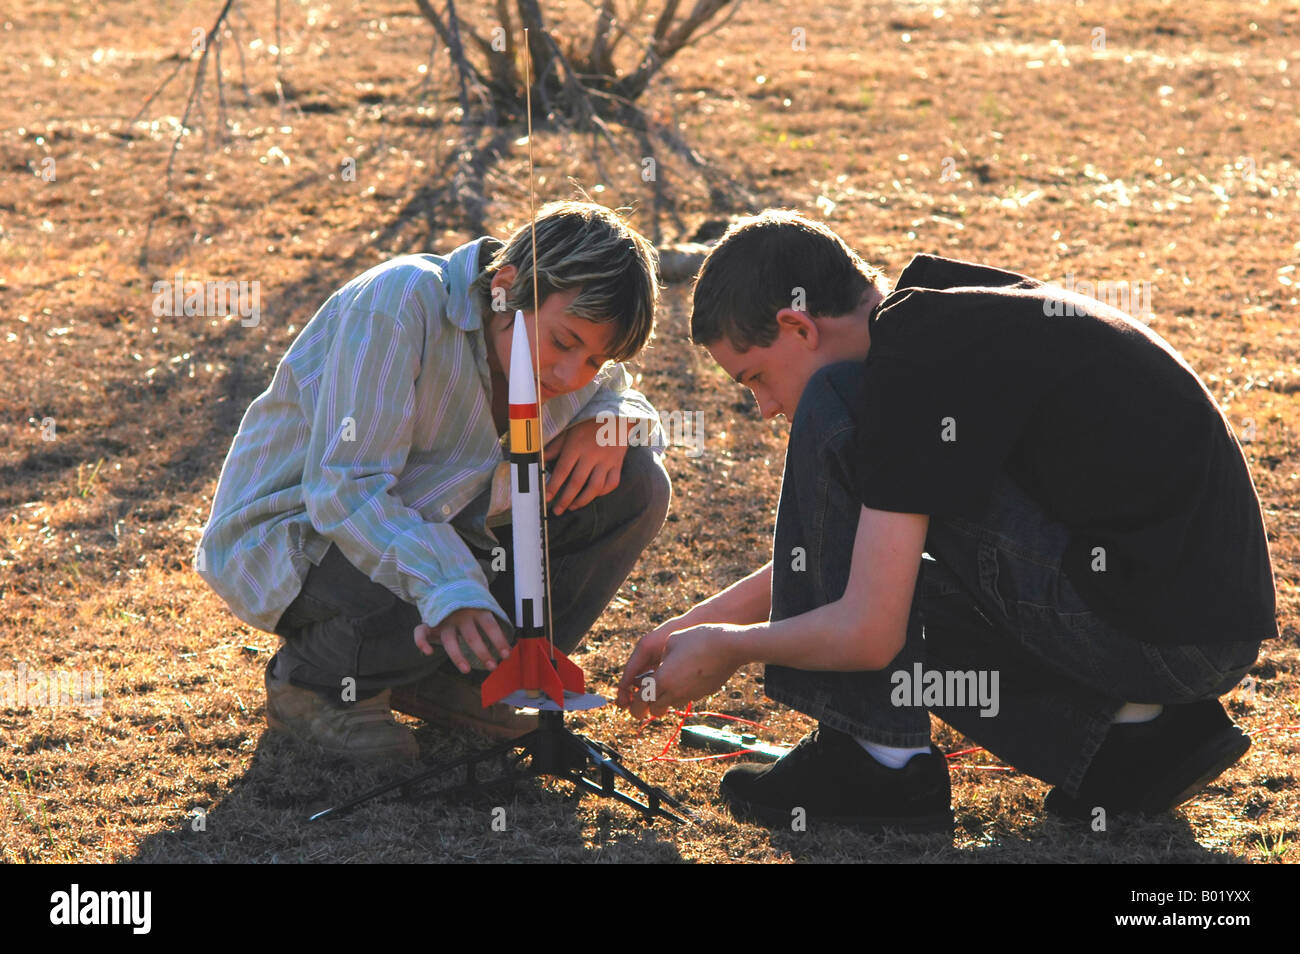 Two boys working together to fix the problem at hand - Stock Image